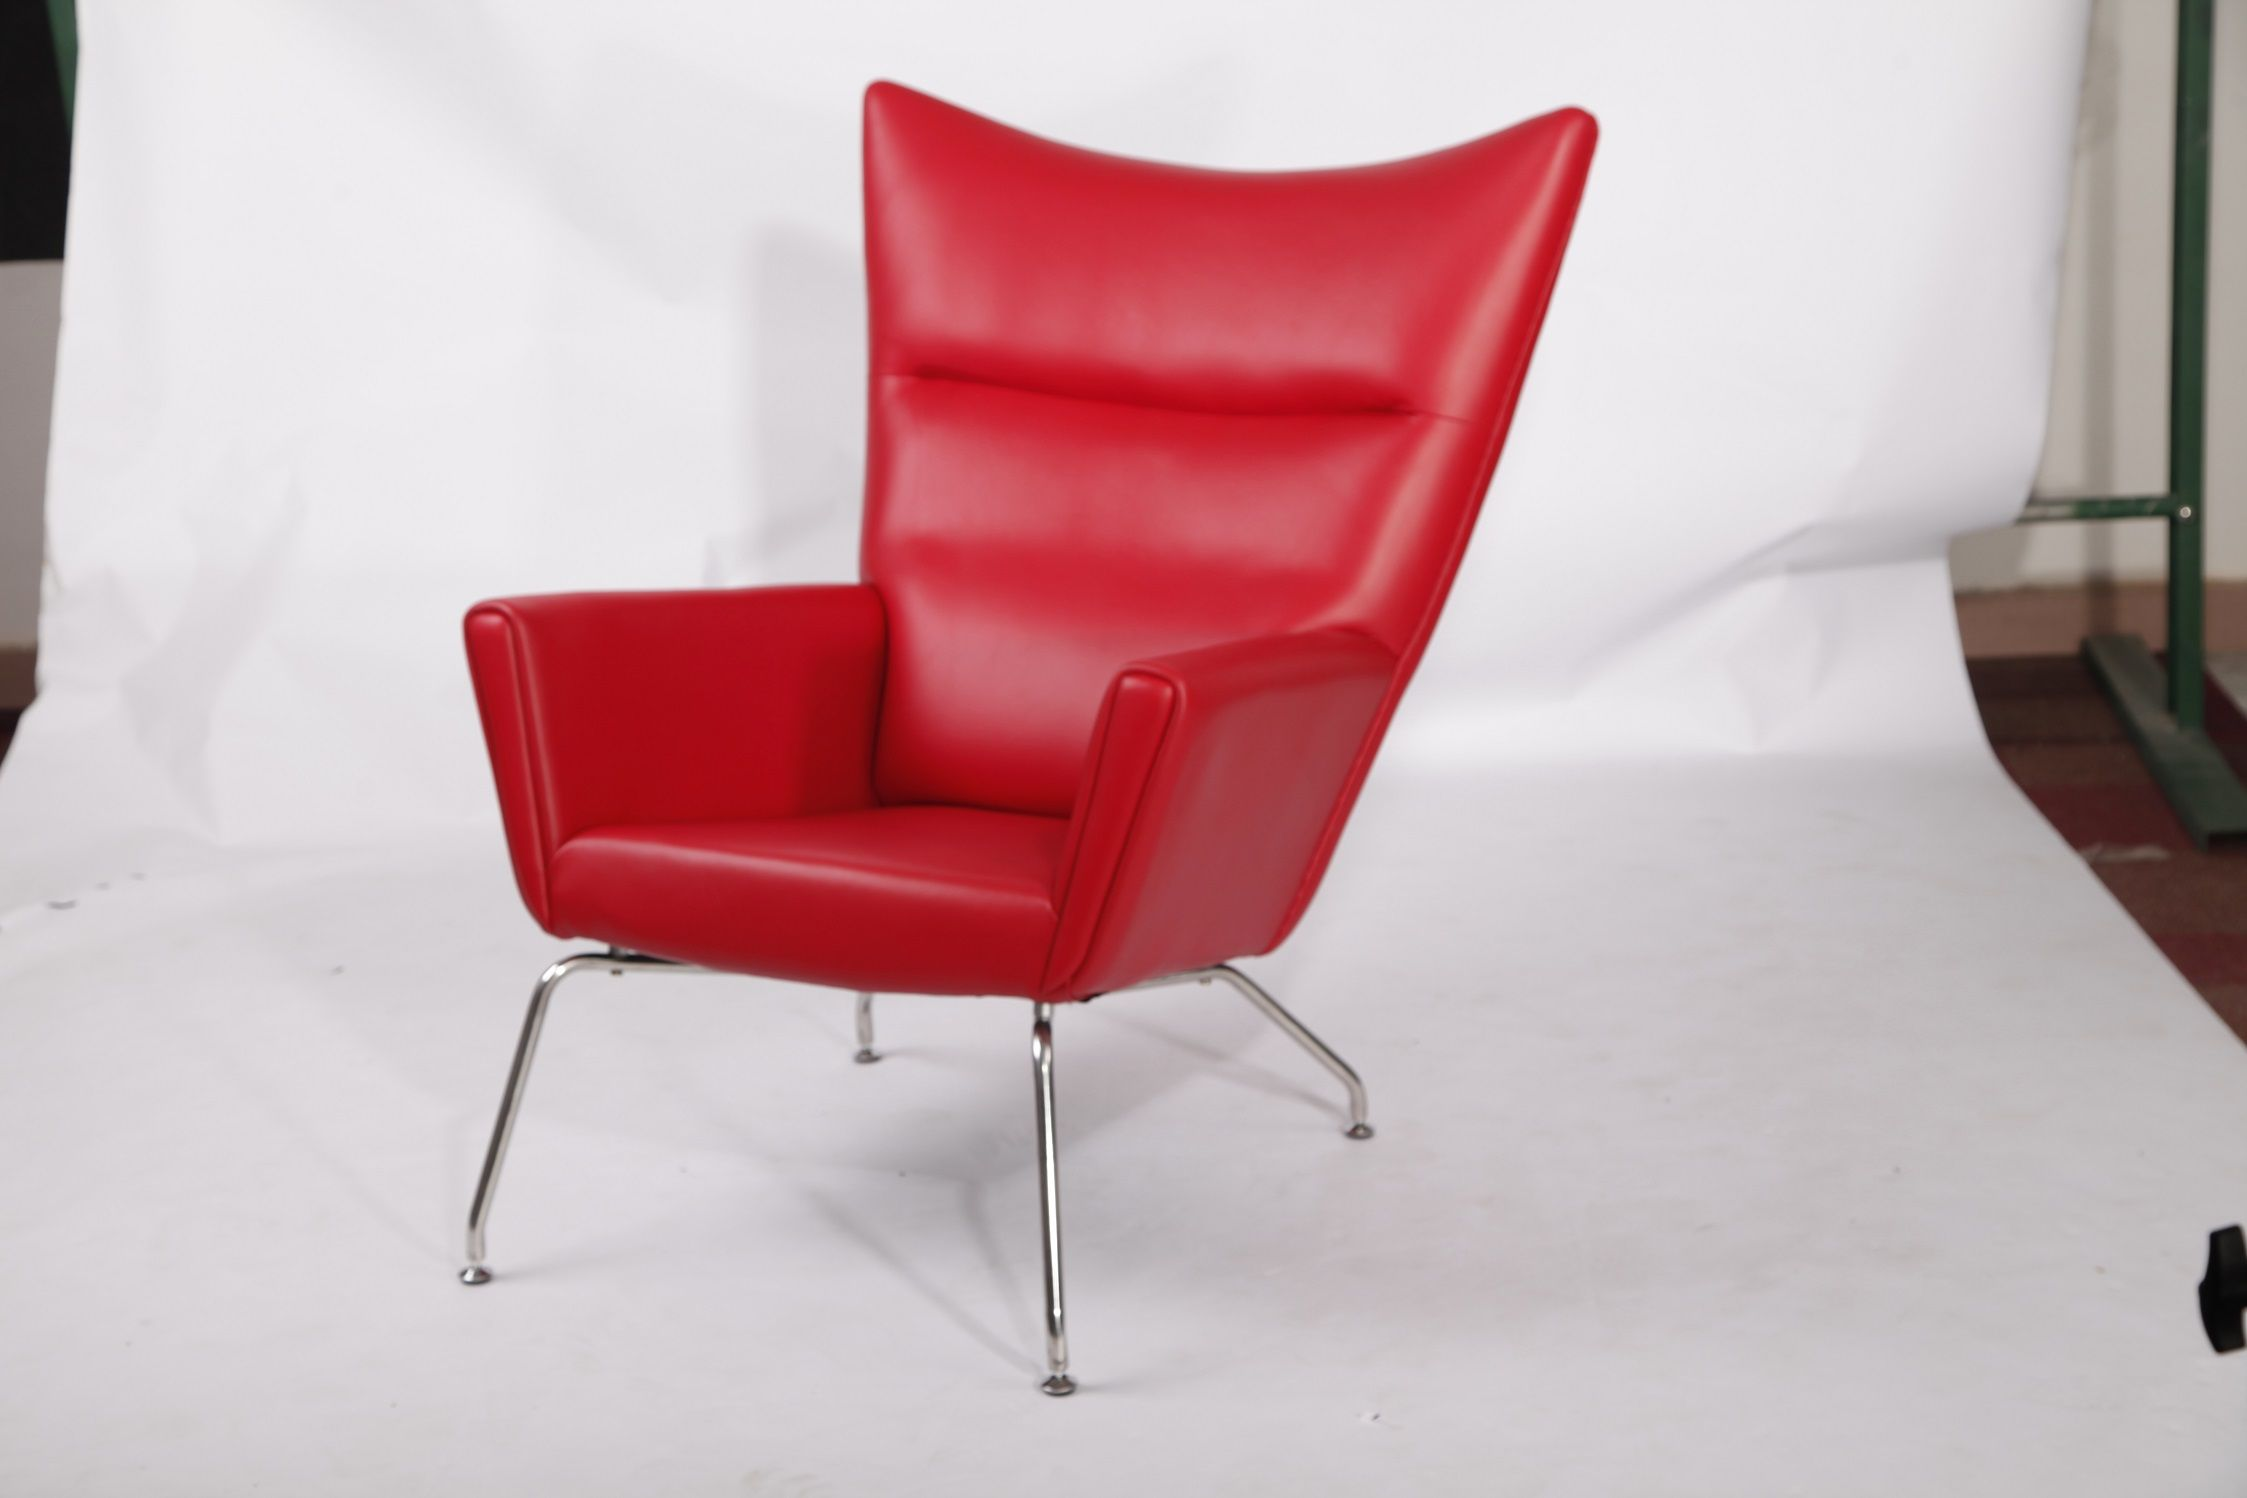 Luxury Red Aniline Leather Well Made CH445 Wing Chair Reproduction